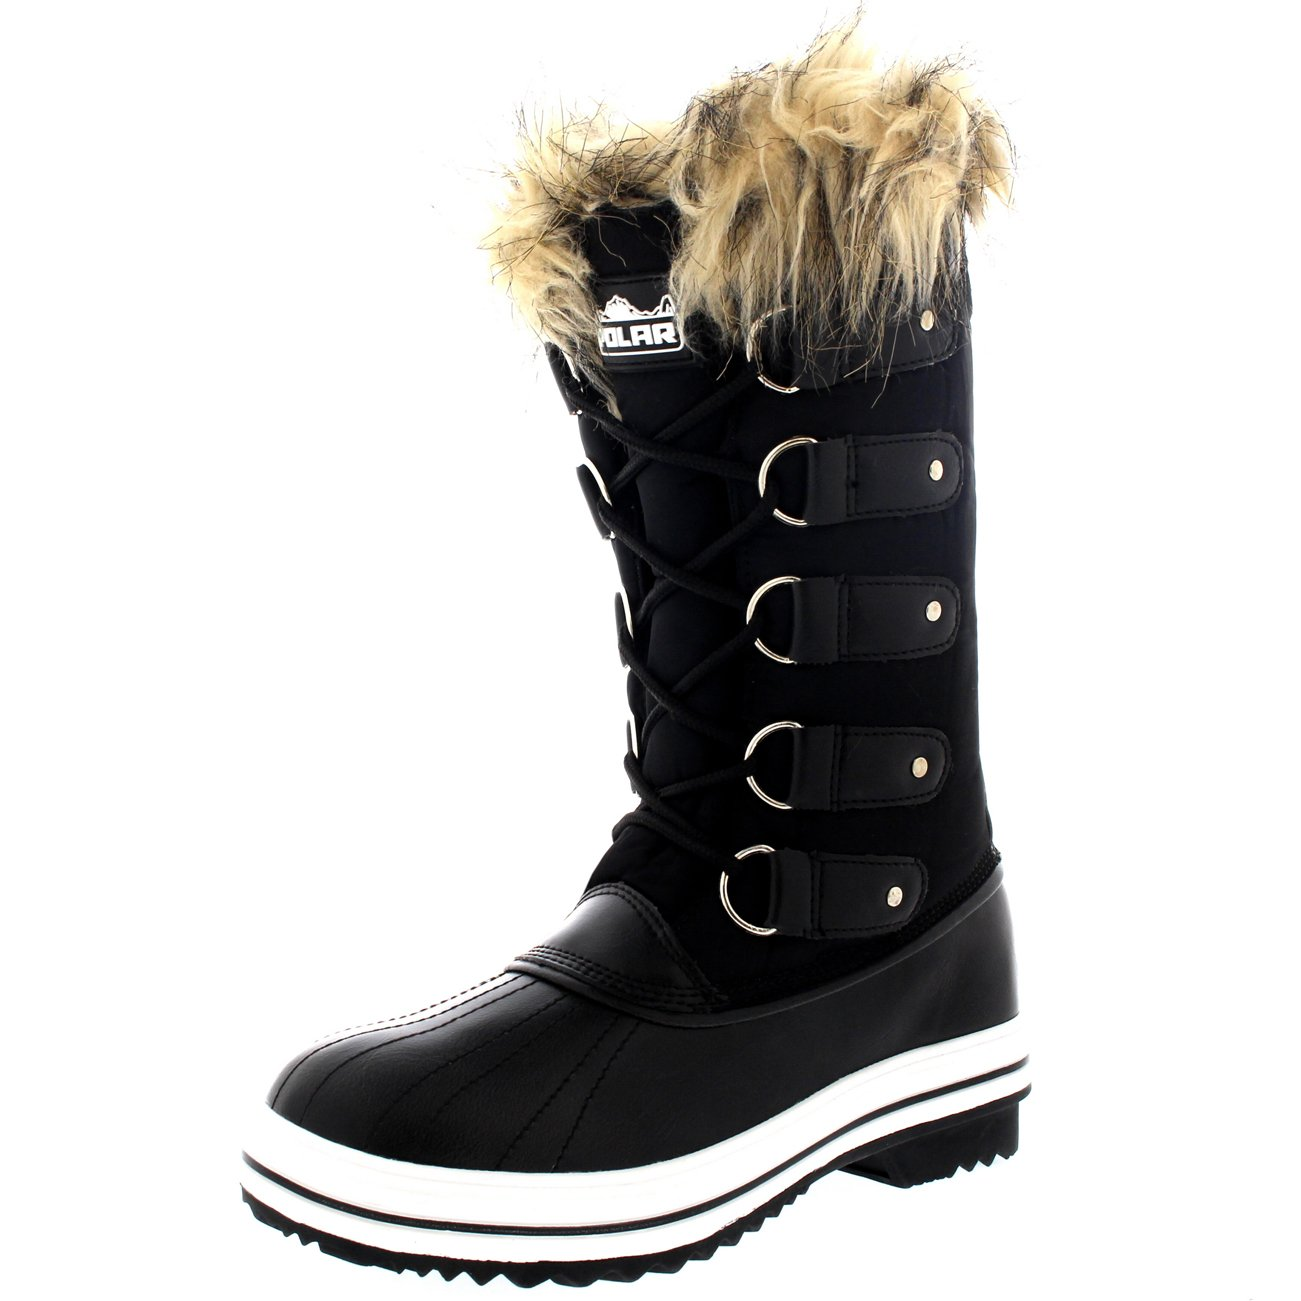 Womens Lace Up Rubber Sole Tall Winter Snow Rain Shoe Boots - 9 - BLN40 YC0055